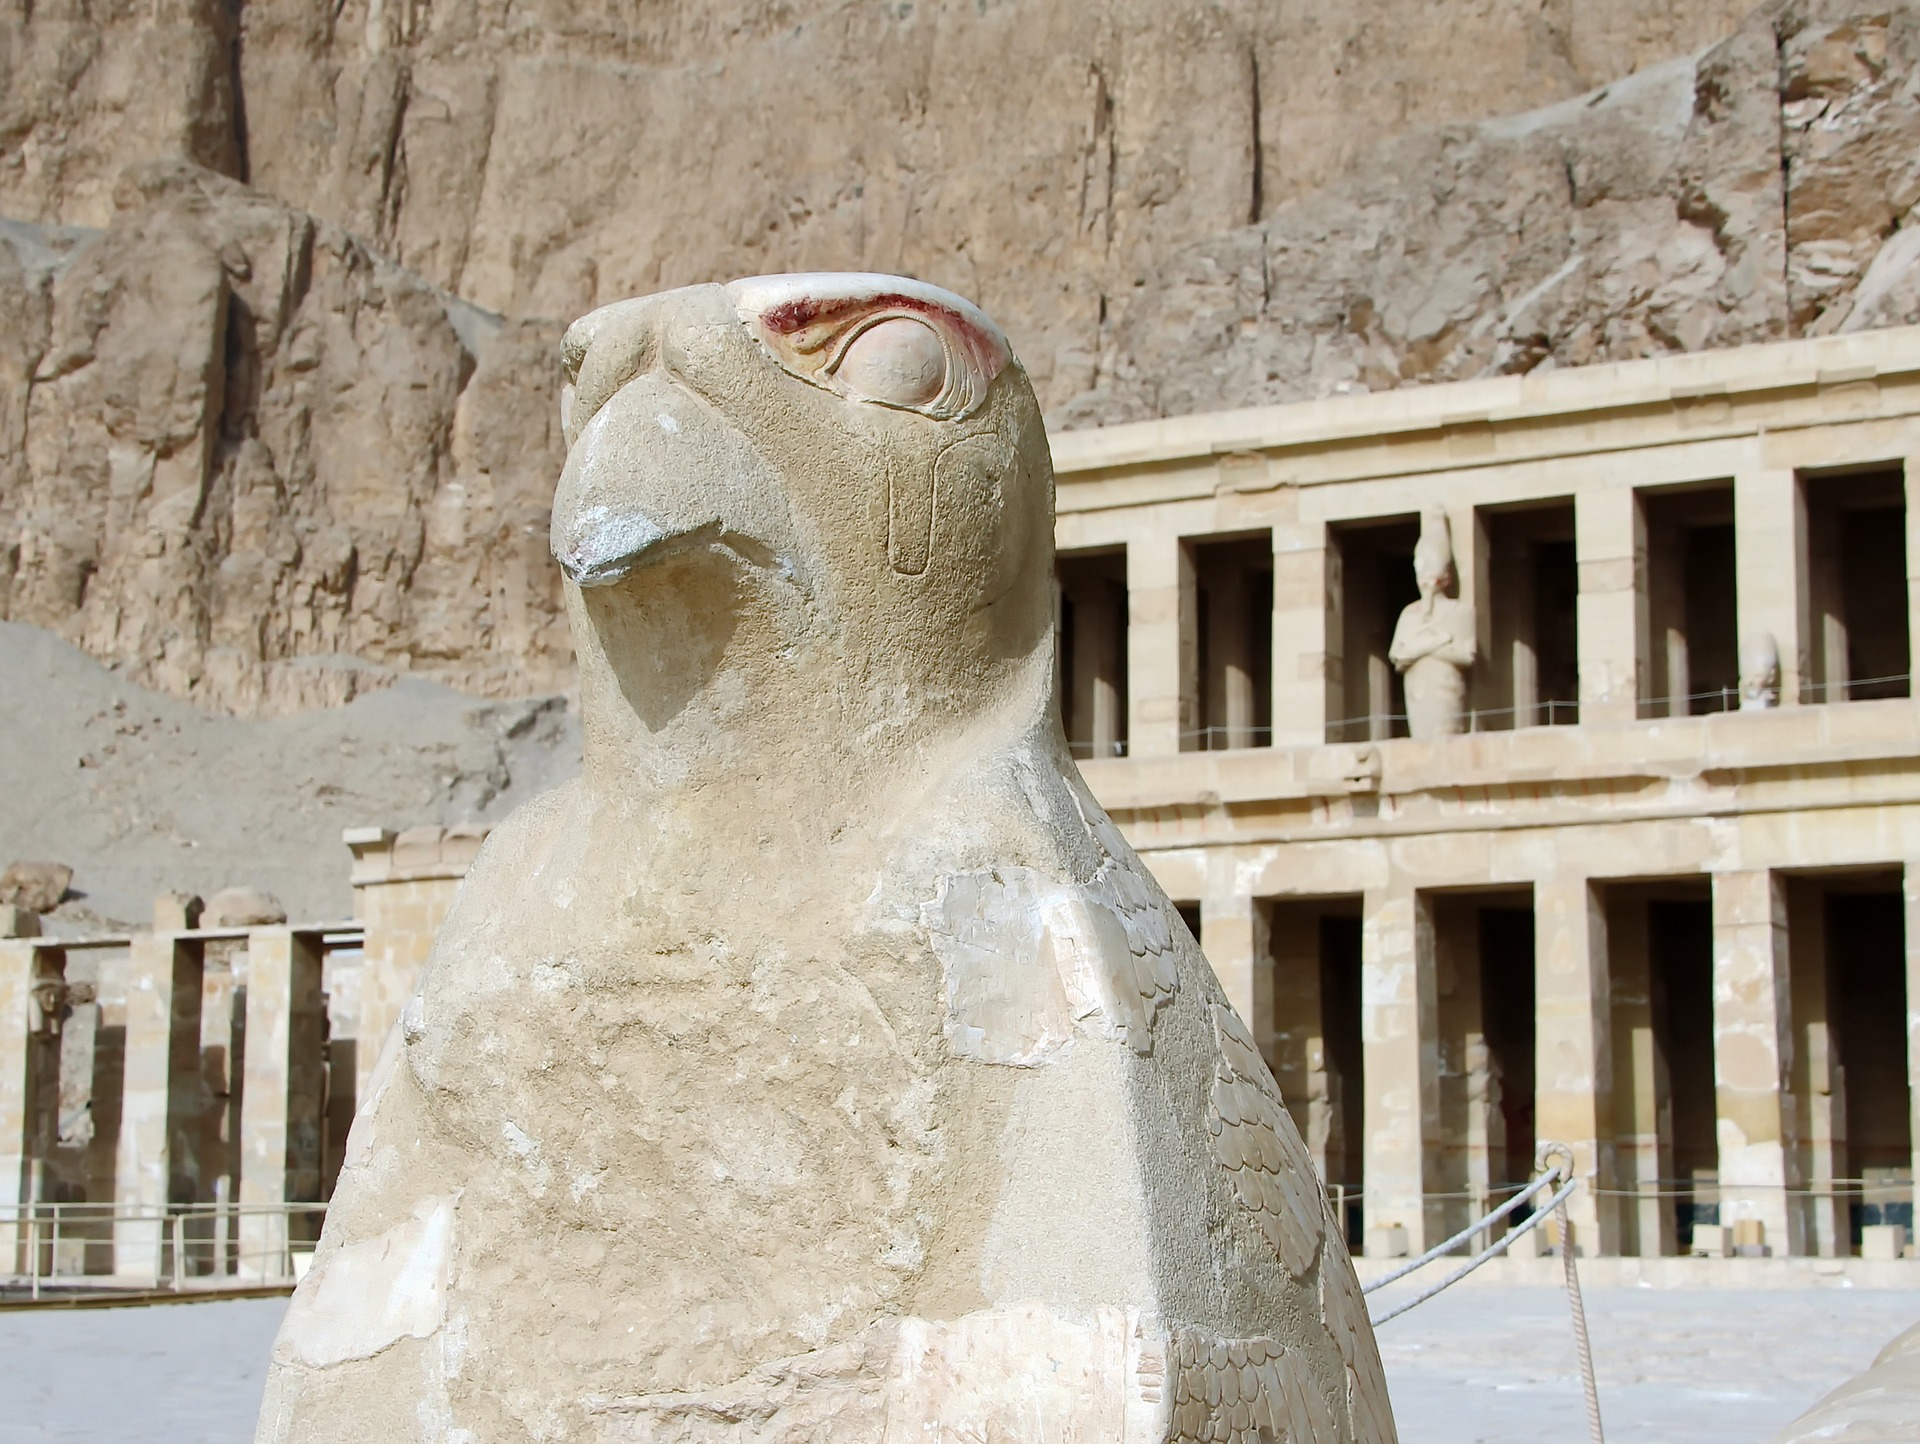 Splendours of Egypt - Temple of Hatshepsut, Luxor, Egypt